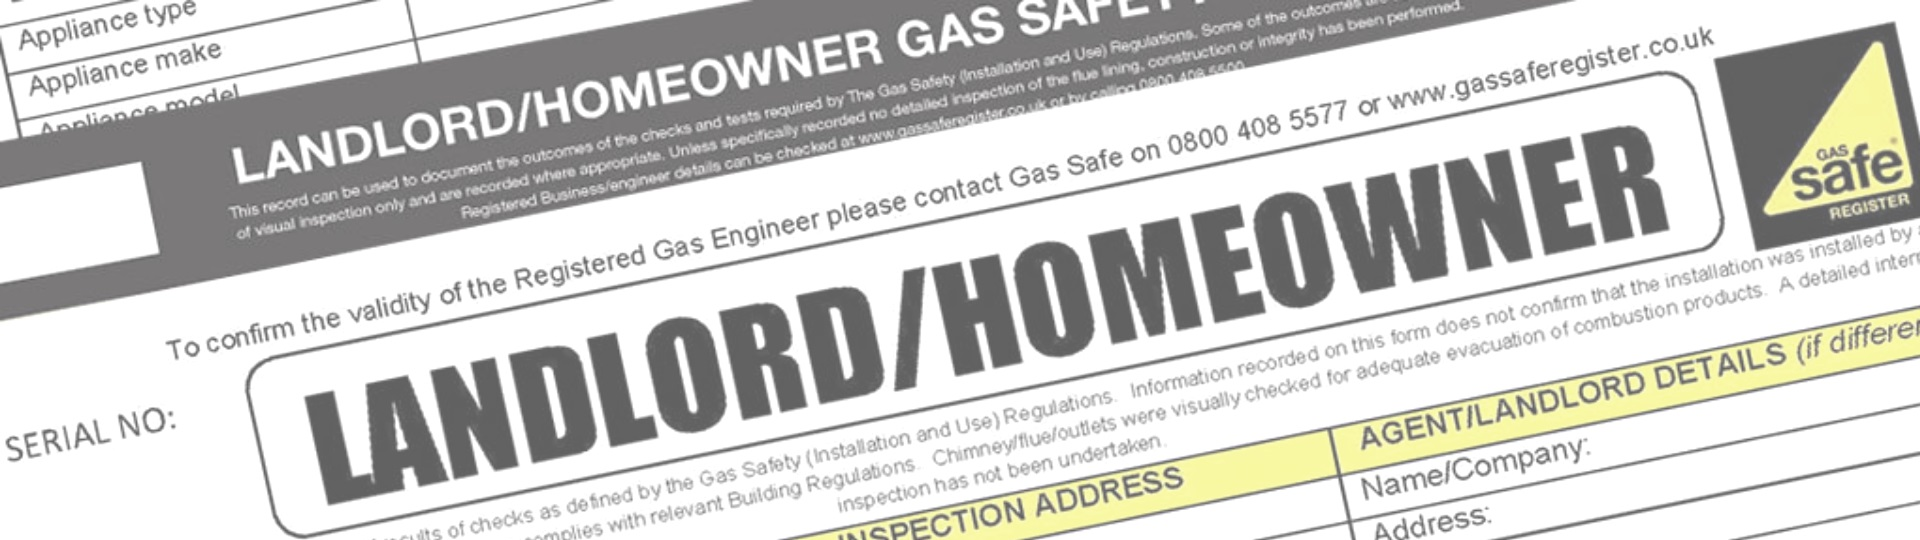 Gas Saftey Certificates Brentry